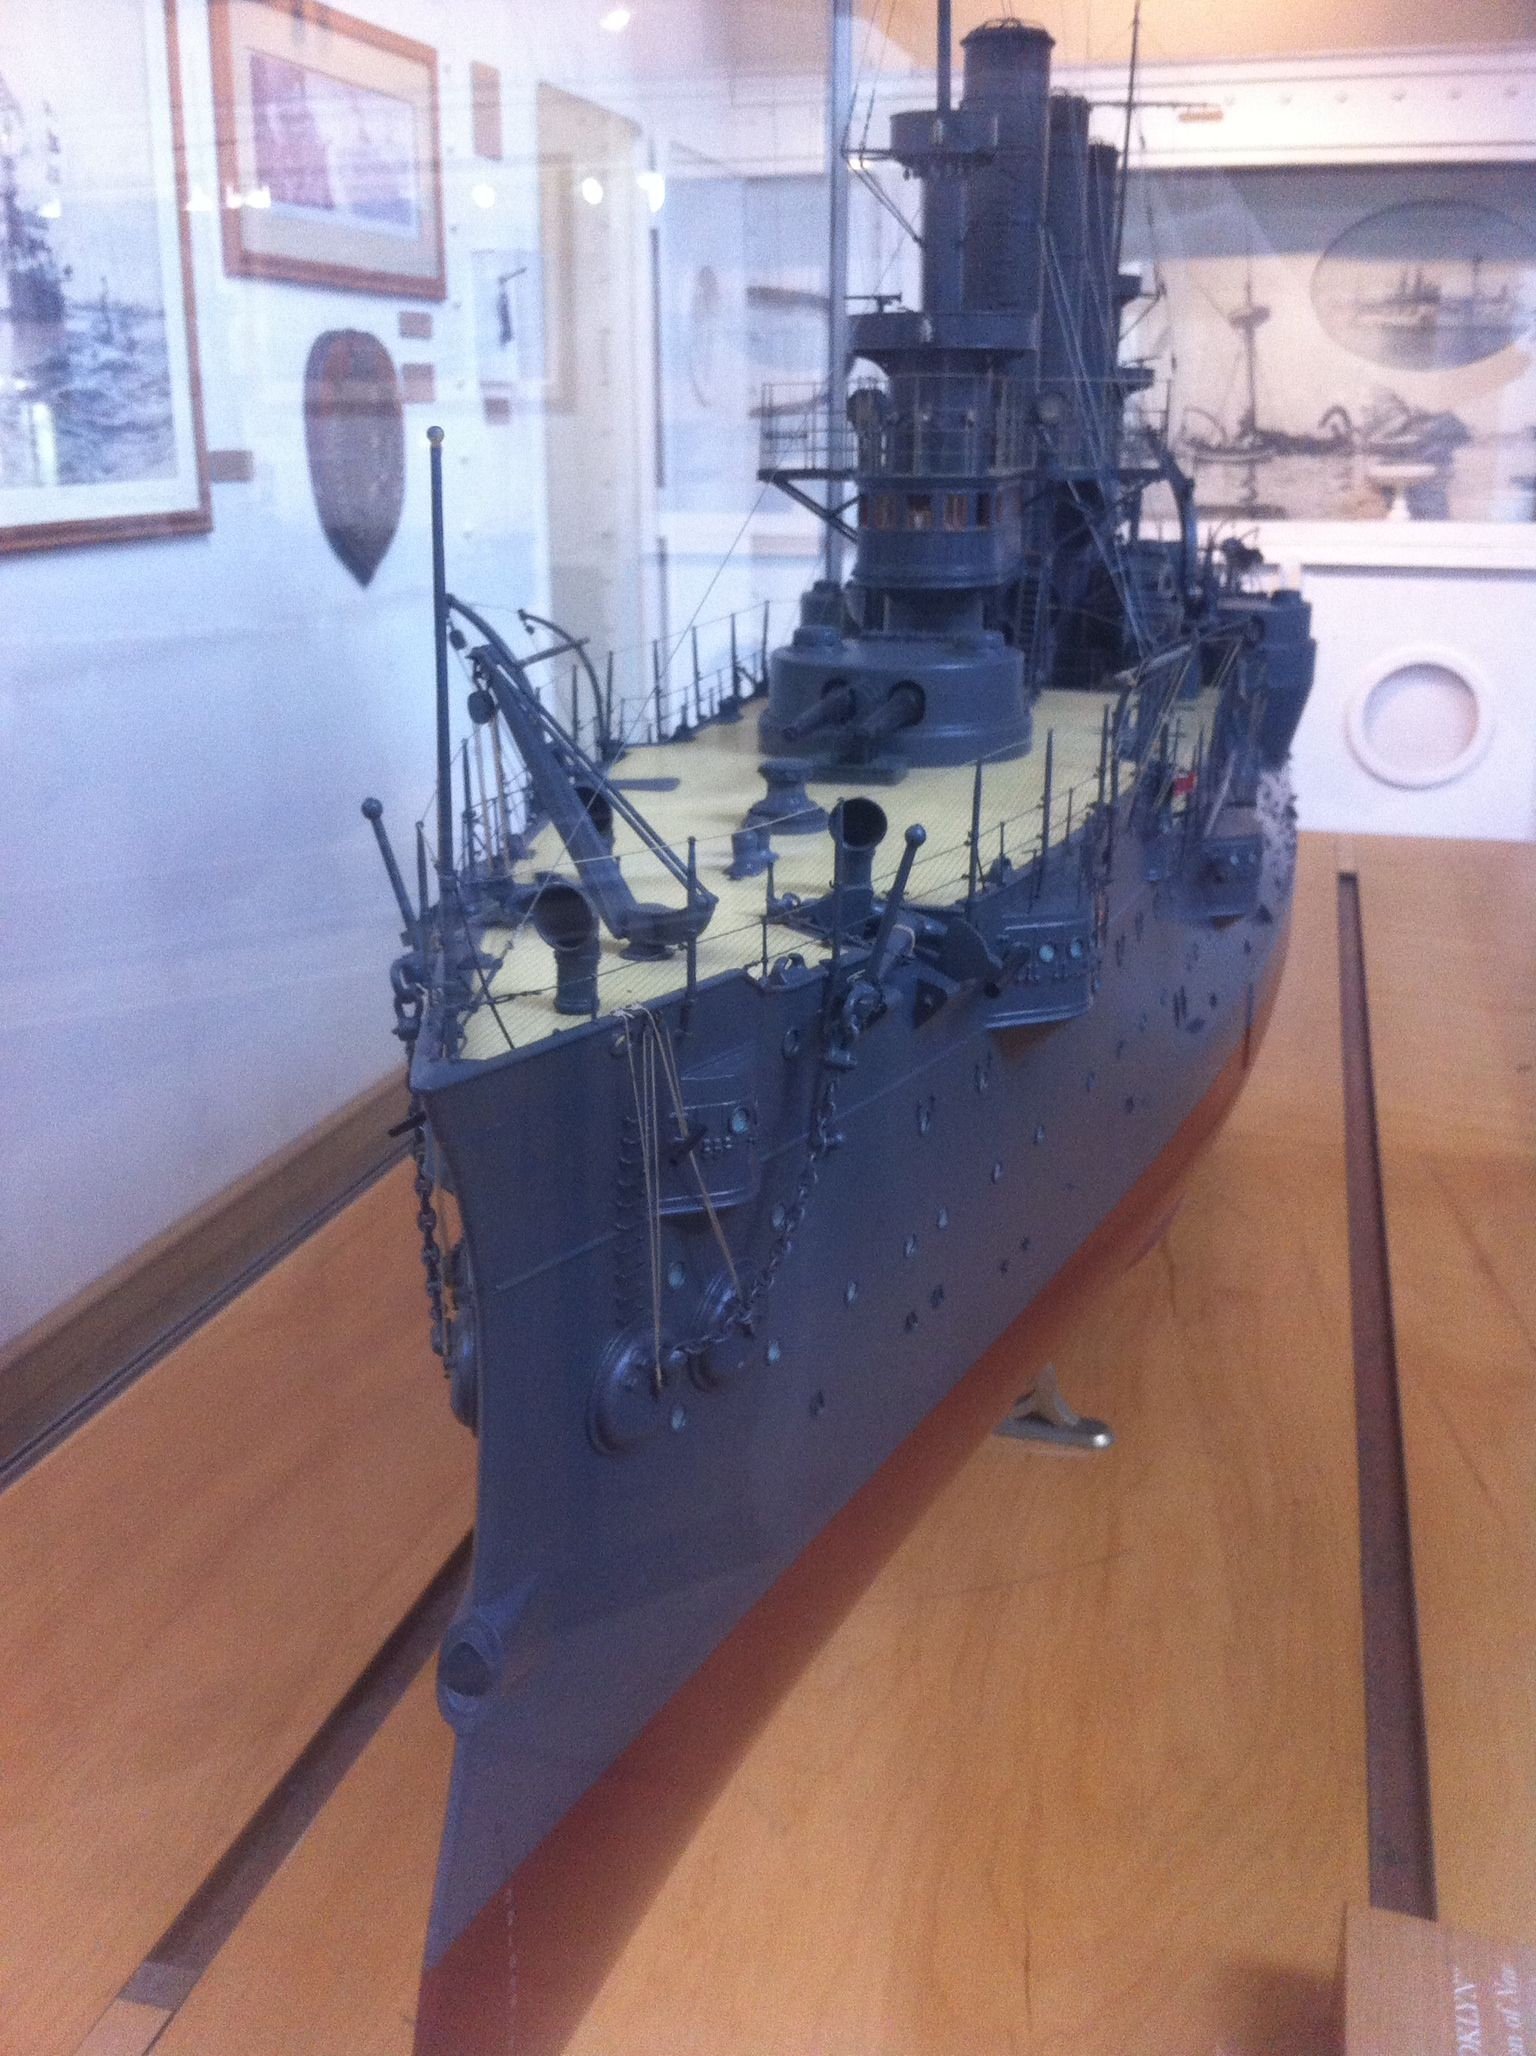 Model Of The Uss Brooklyn Navy Museum Washington Navy Yard Military Antiques D Day Normandy Military History